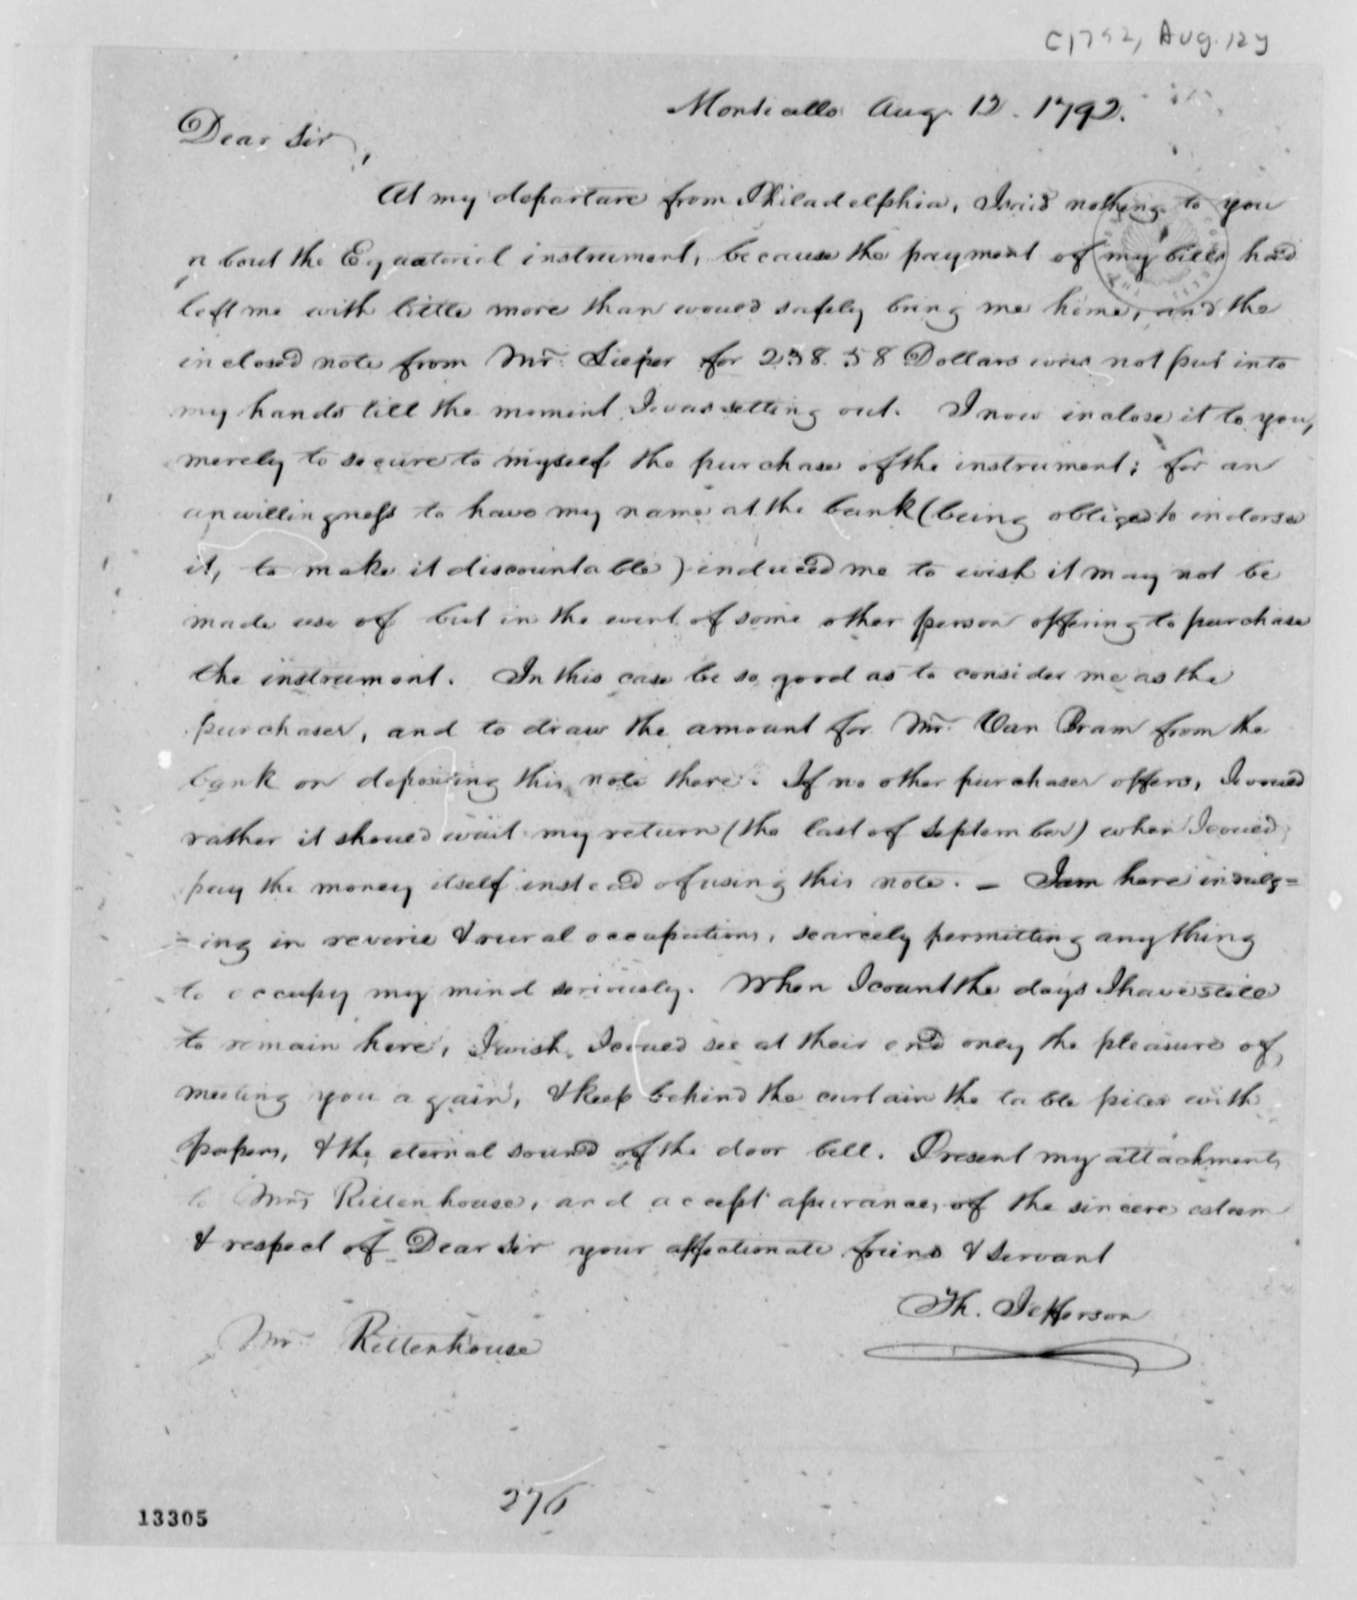 Thomas Jefferson to David Rittenhouse, August 12, 1792